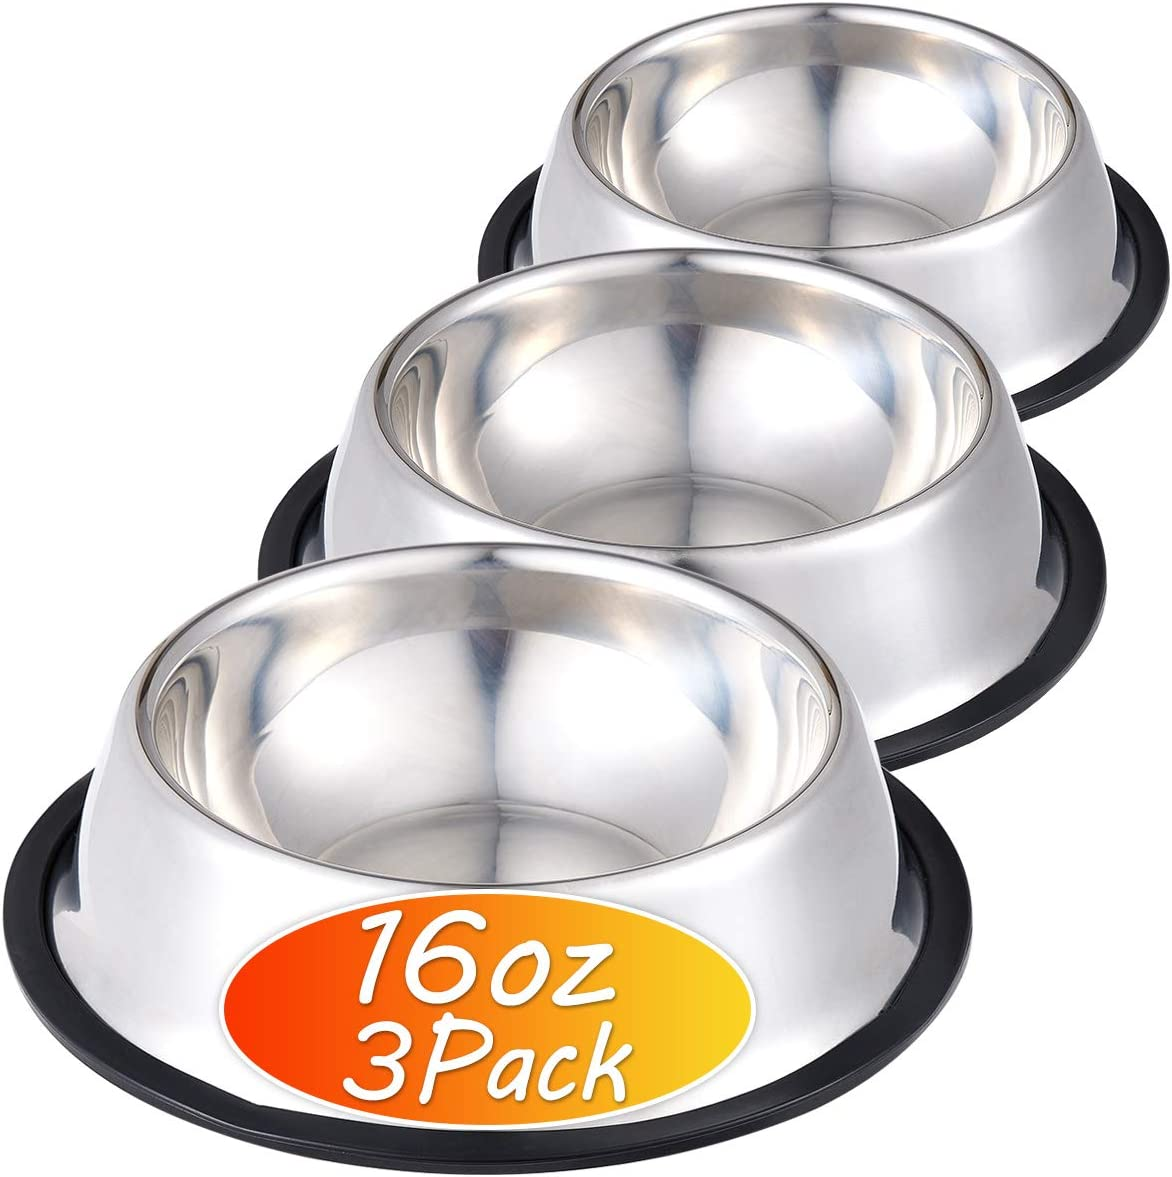 Stainless Steel Dog Bowl with Rubber Base for Food and Water, Pet Food Container, Perfect Choice for Small/Medium Dogs or Cats